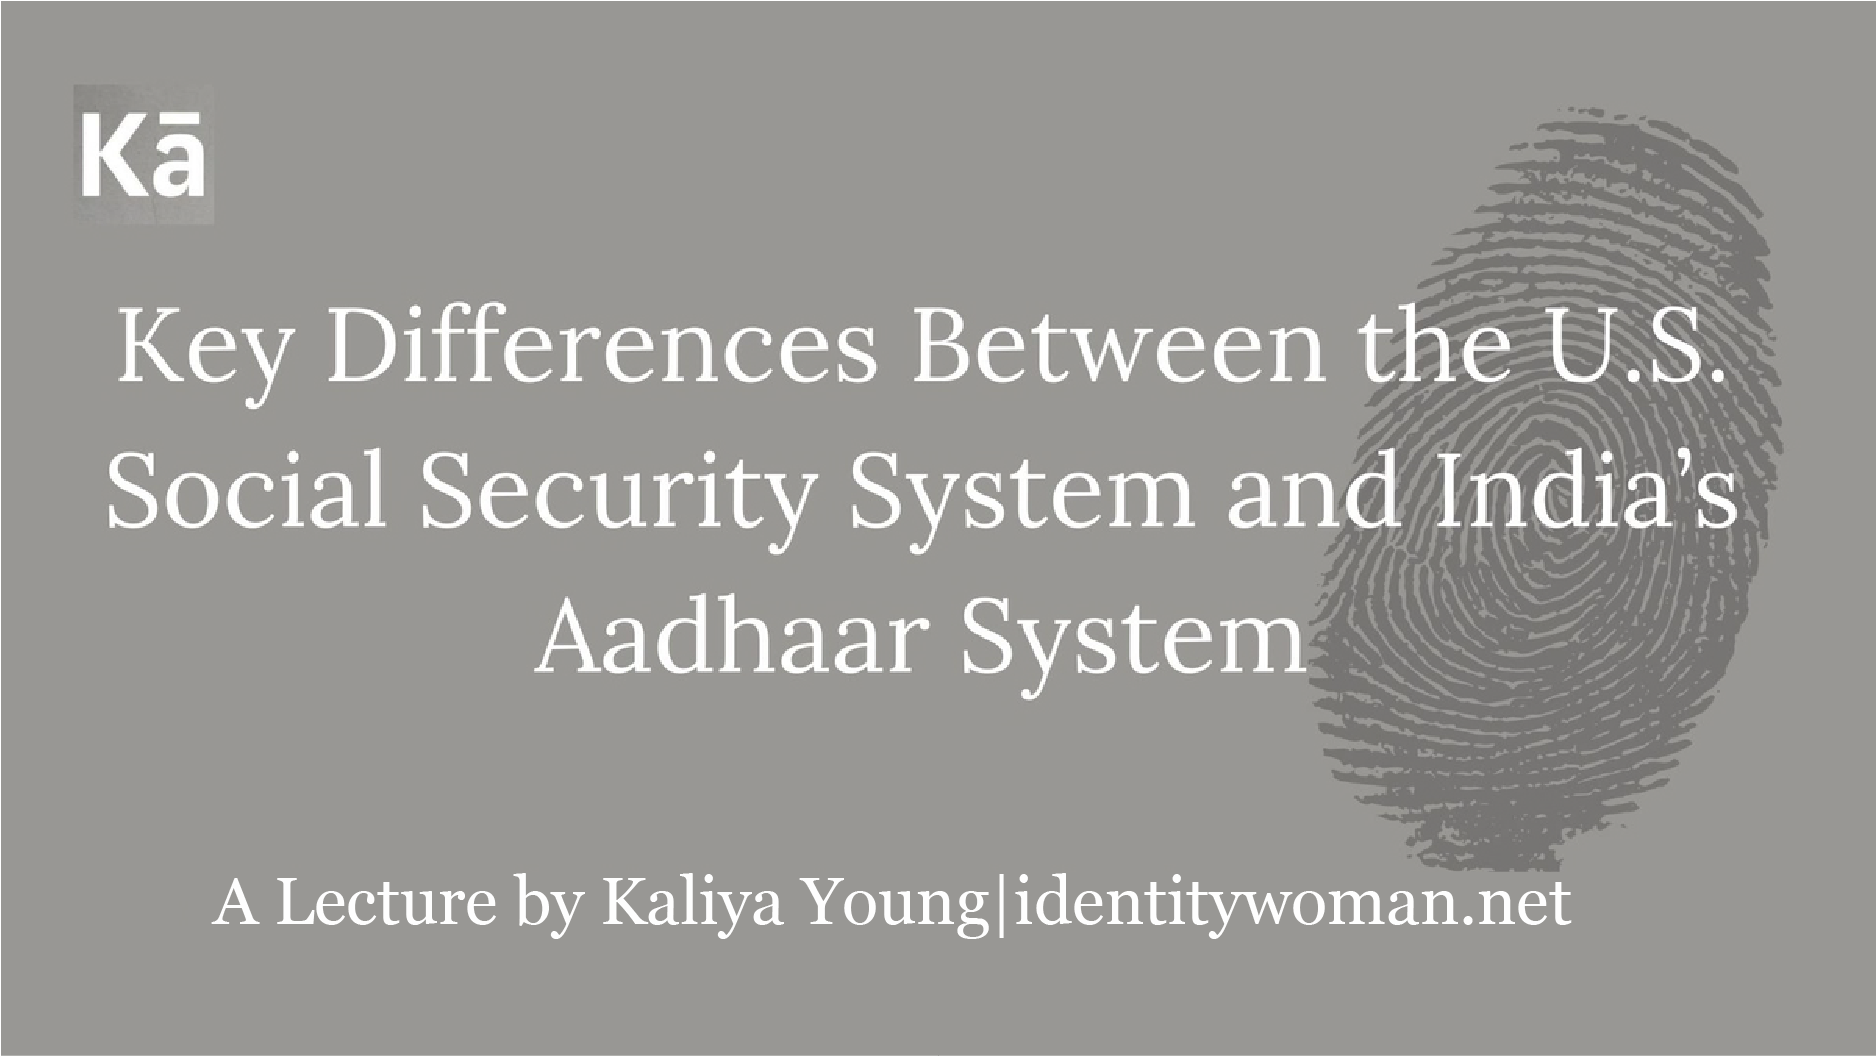 Key Differences Between the U.S Social Security System and India's Aadhaar System